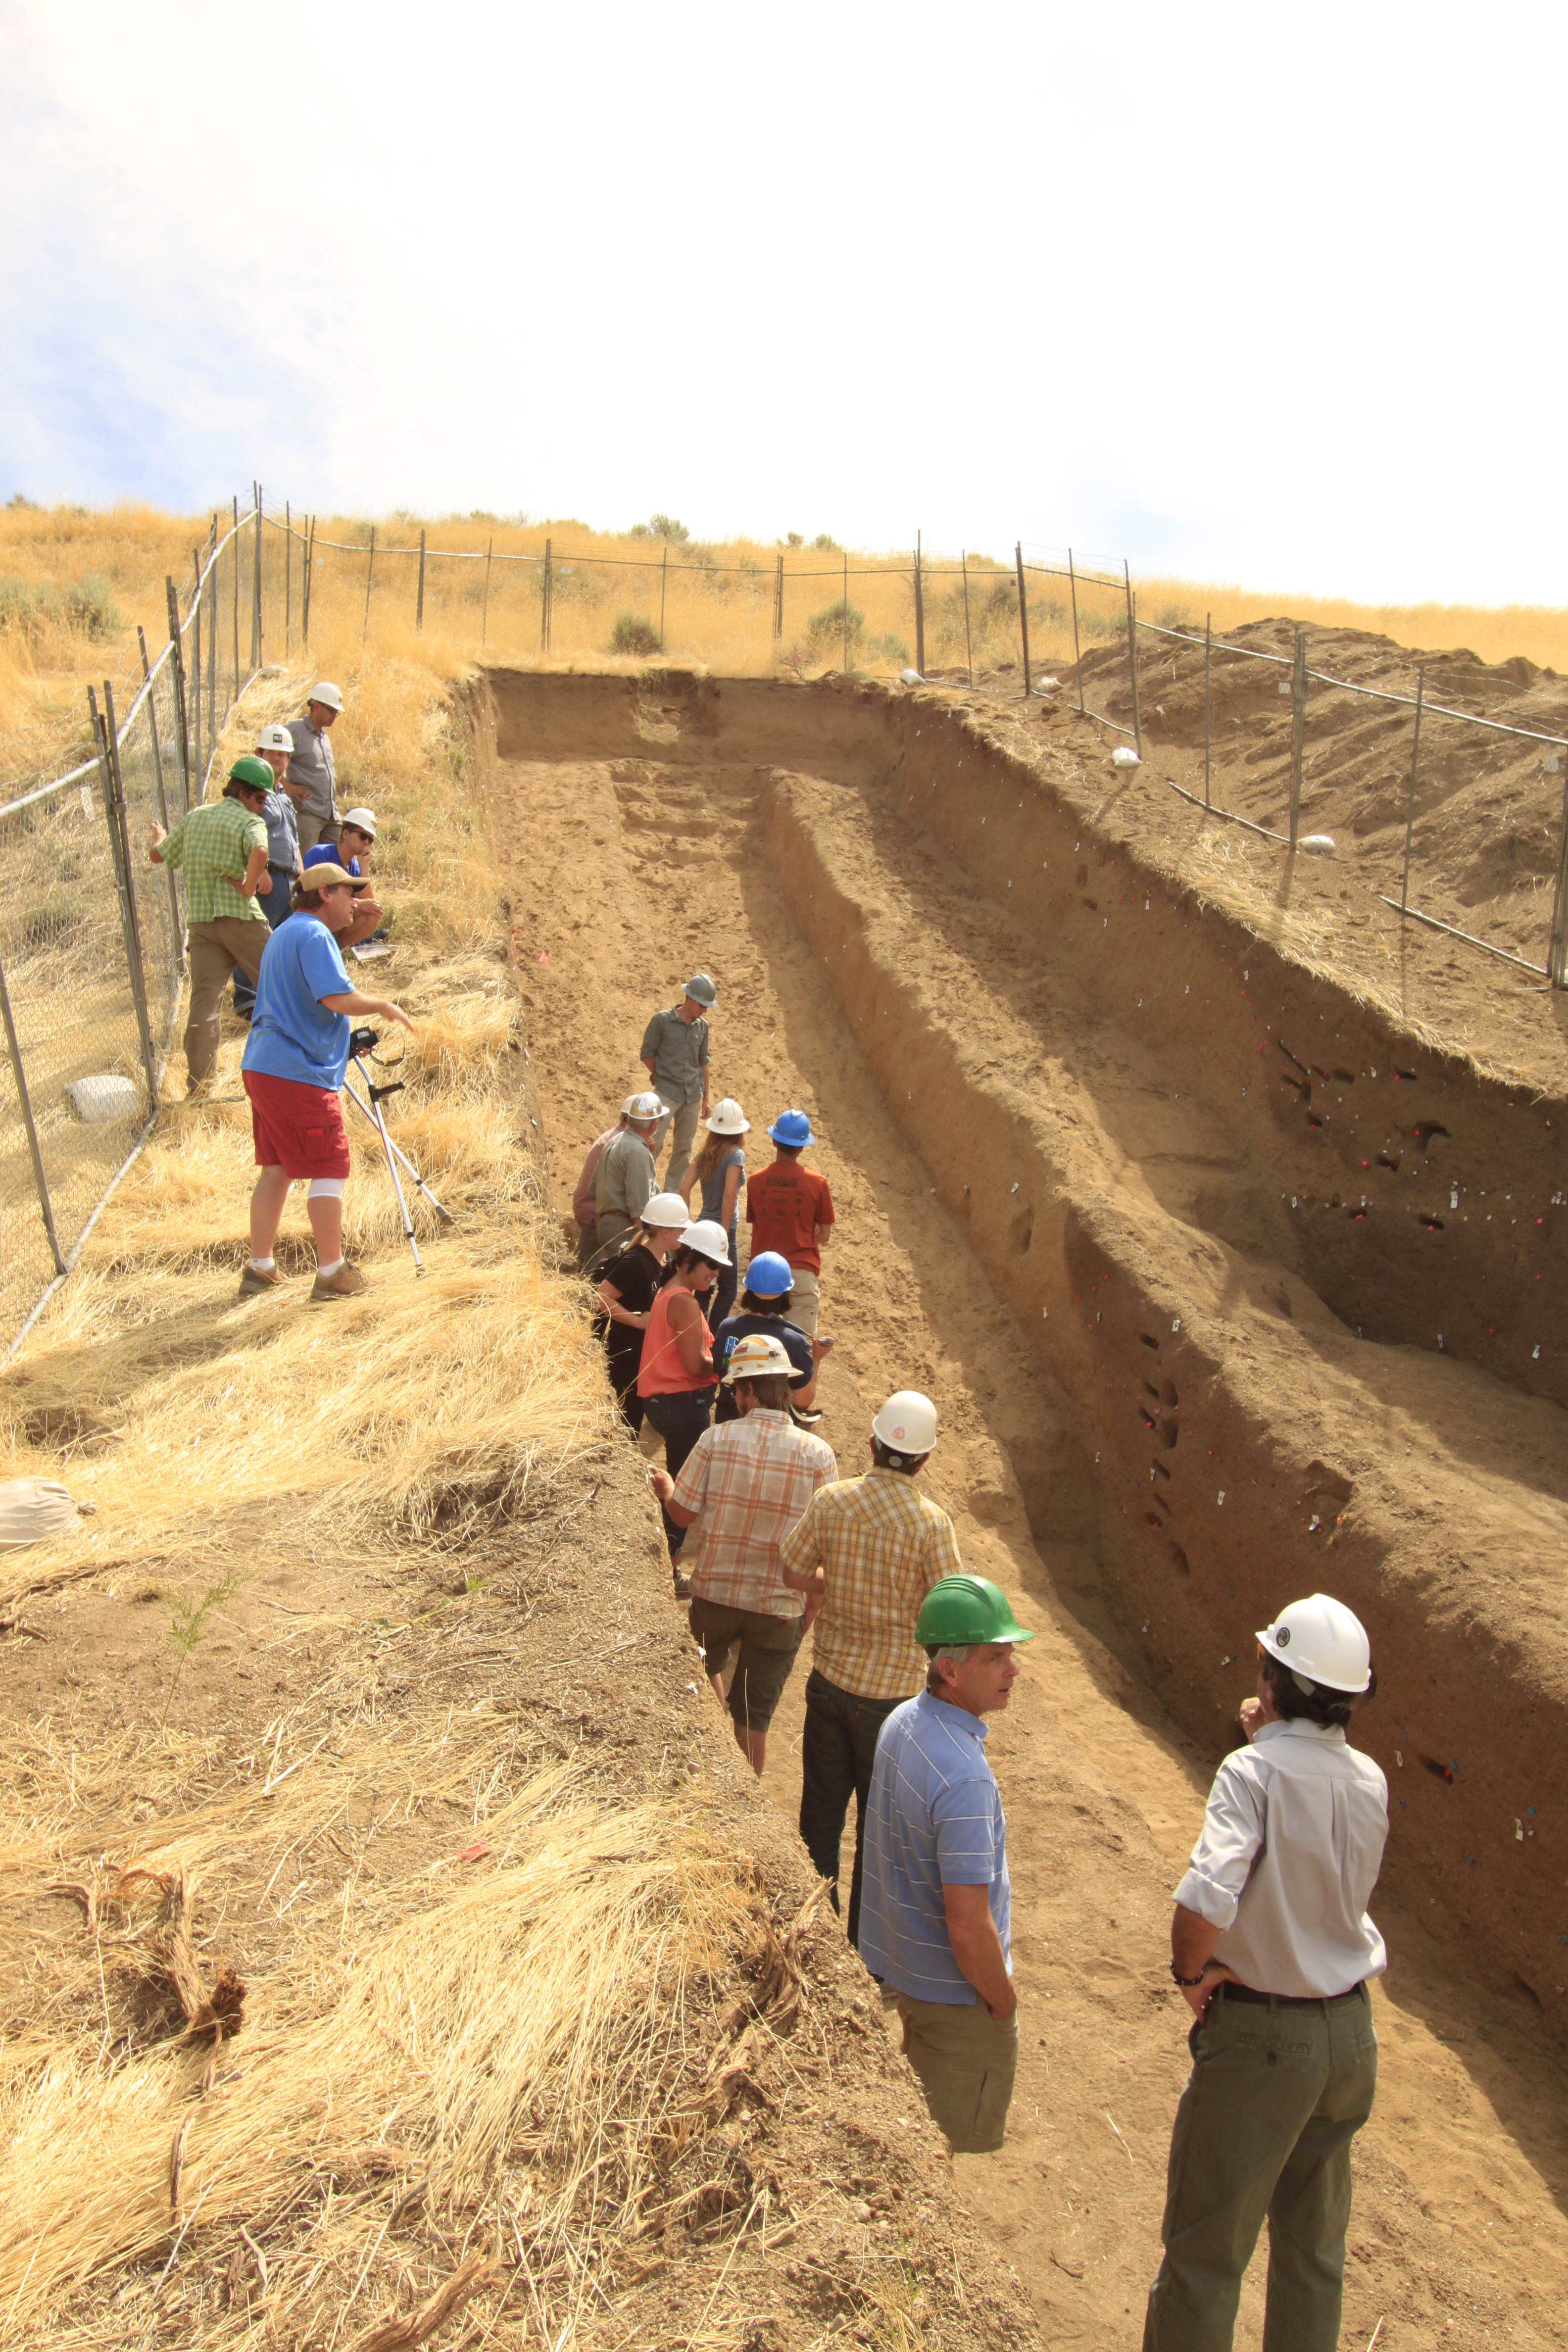 Fault trench near Draper Utah. Trenches allow geologists to see a cross section of a fault and to use dating techniques to determine how frequently earthquakes occur.